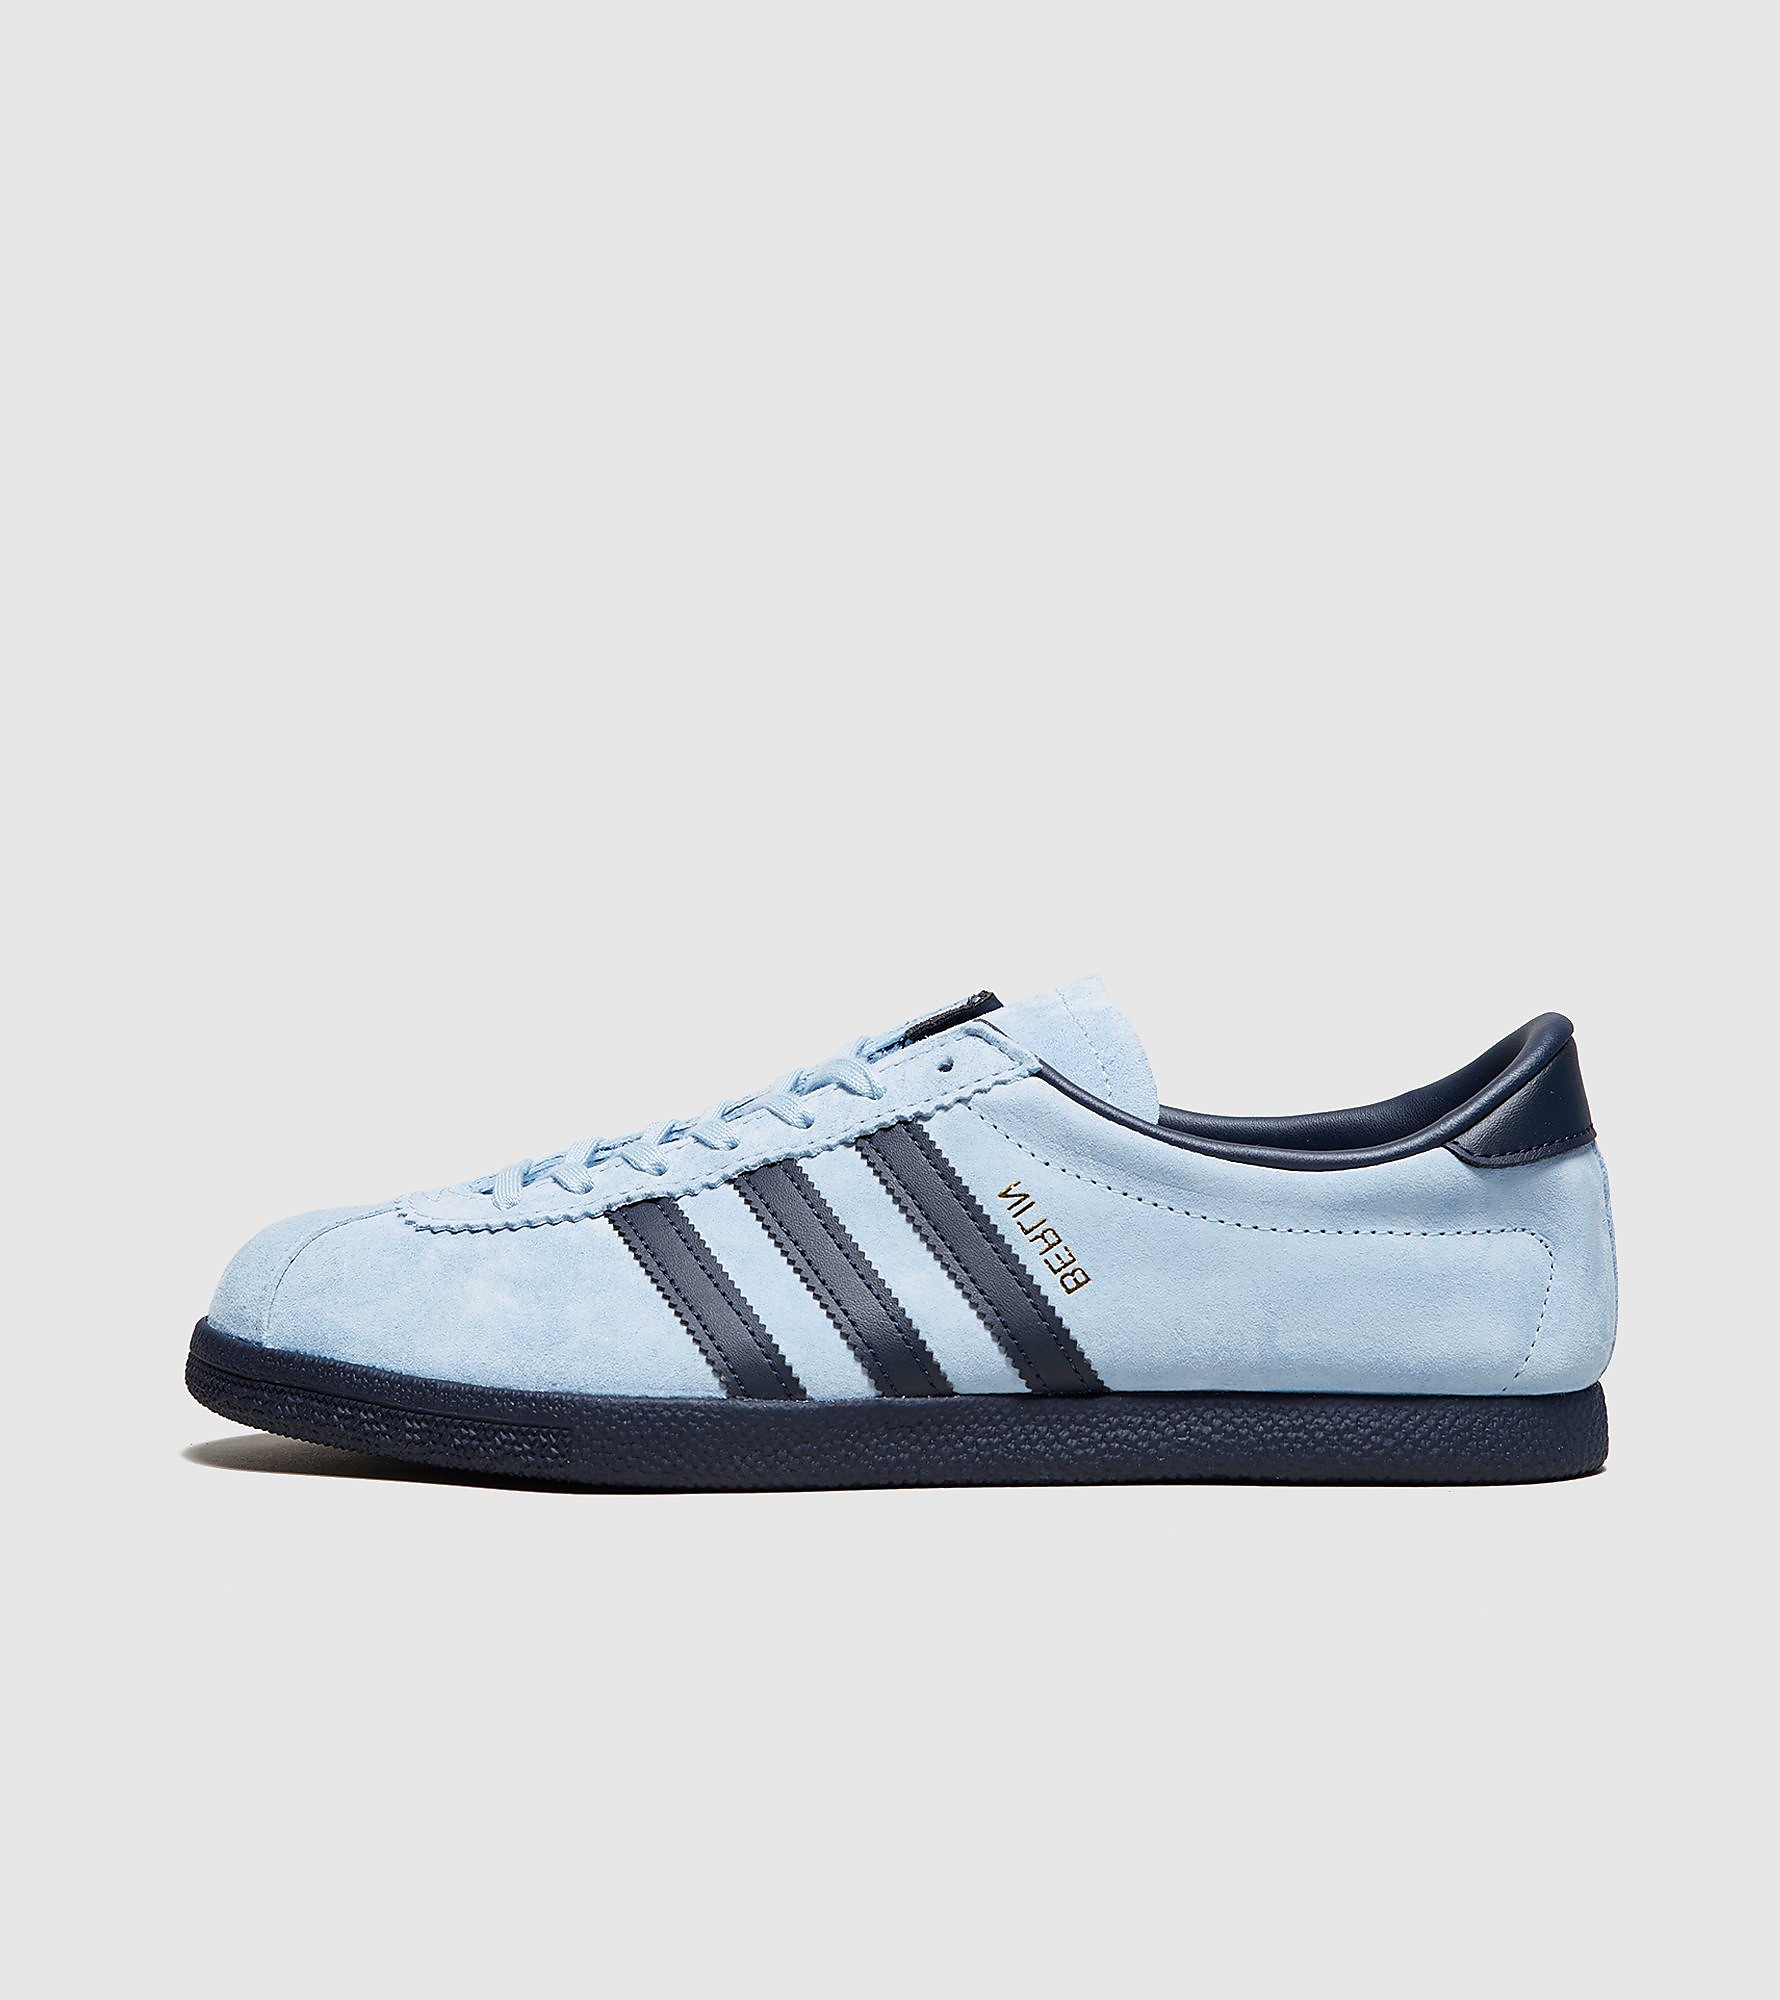 adidas Originals Berlin - size? Exclusive